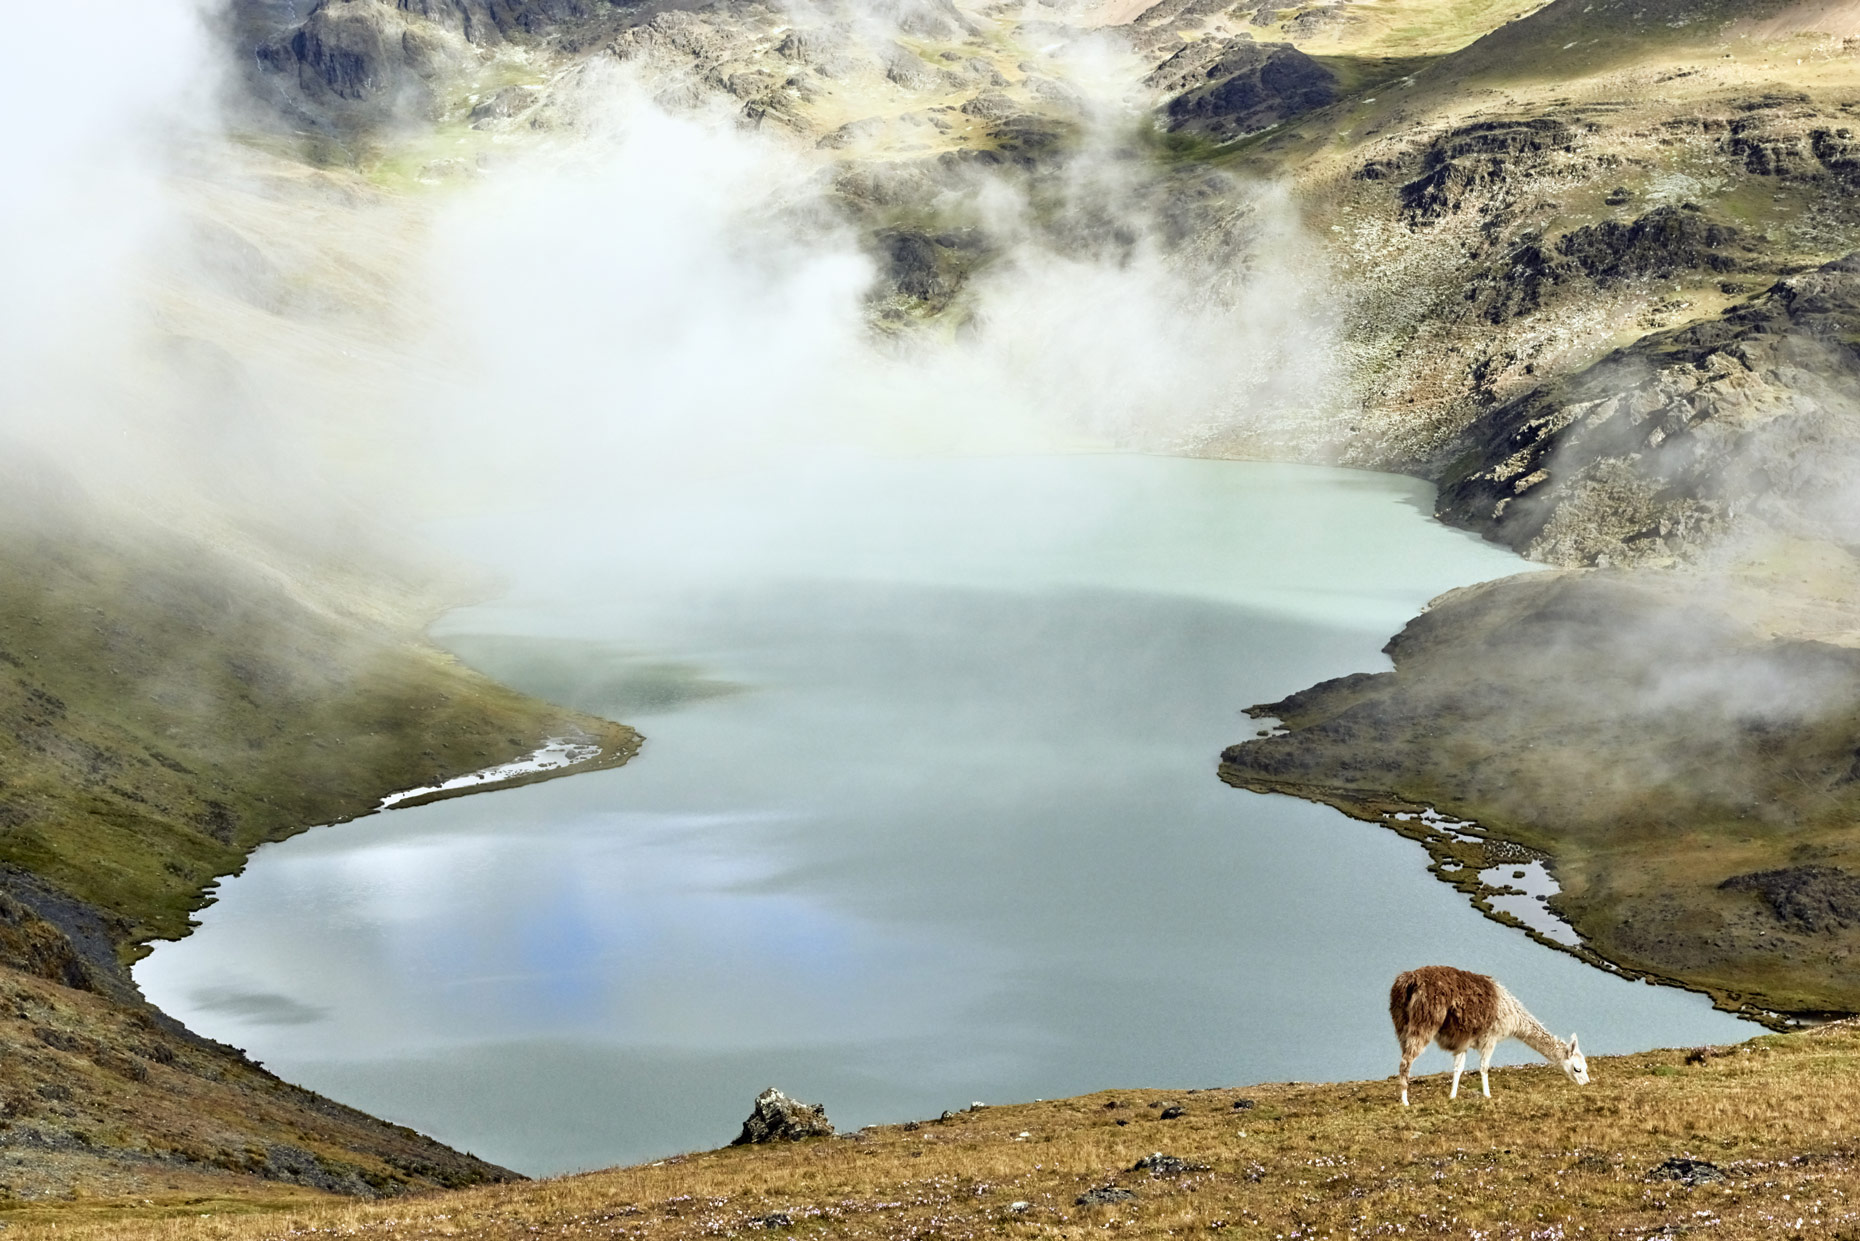 Beautiful-lake-view-in-Andean-mountains-with-Alpaca-grazing-nearby